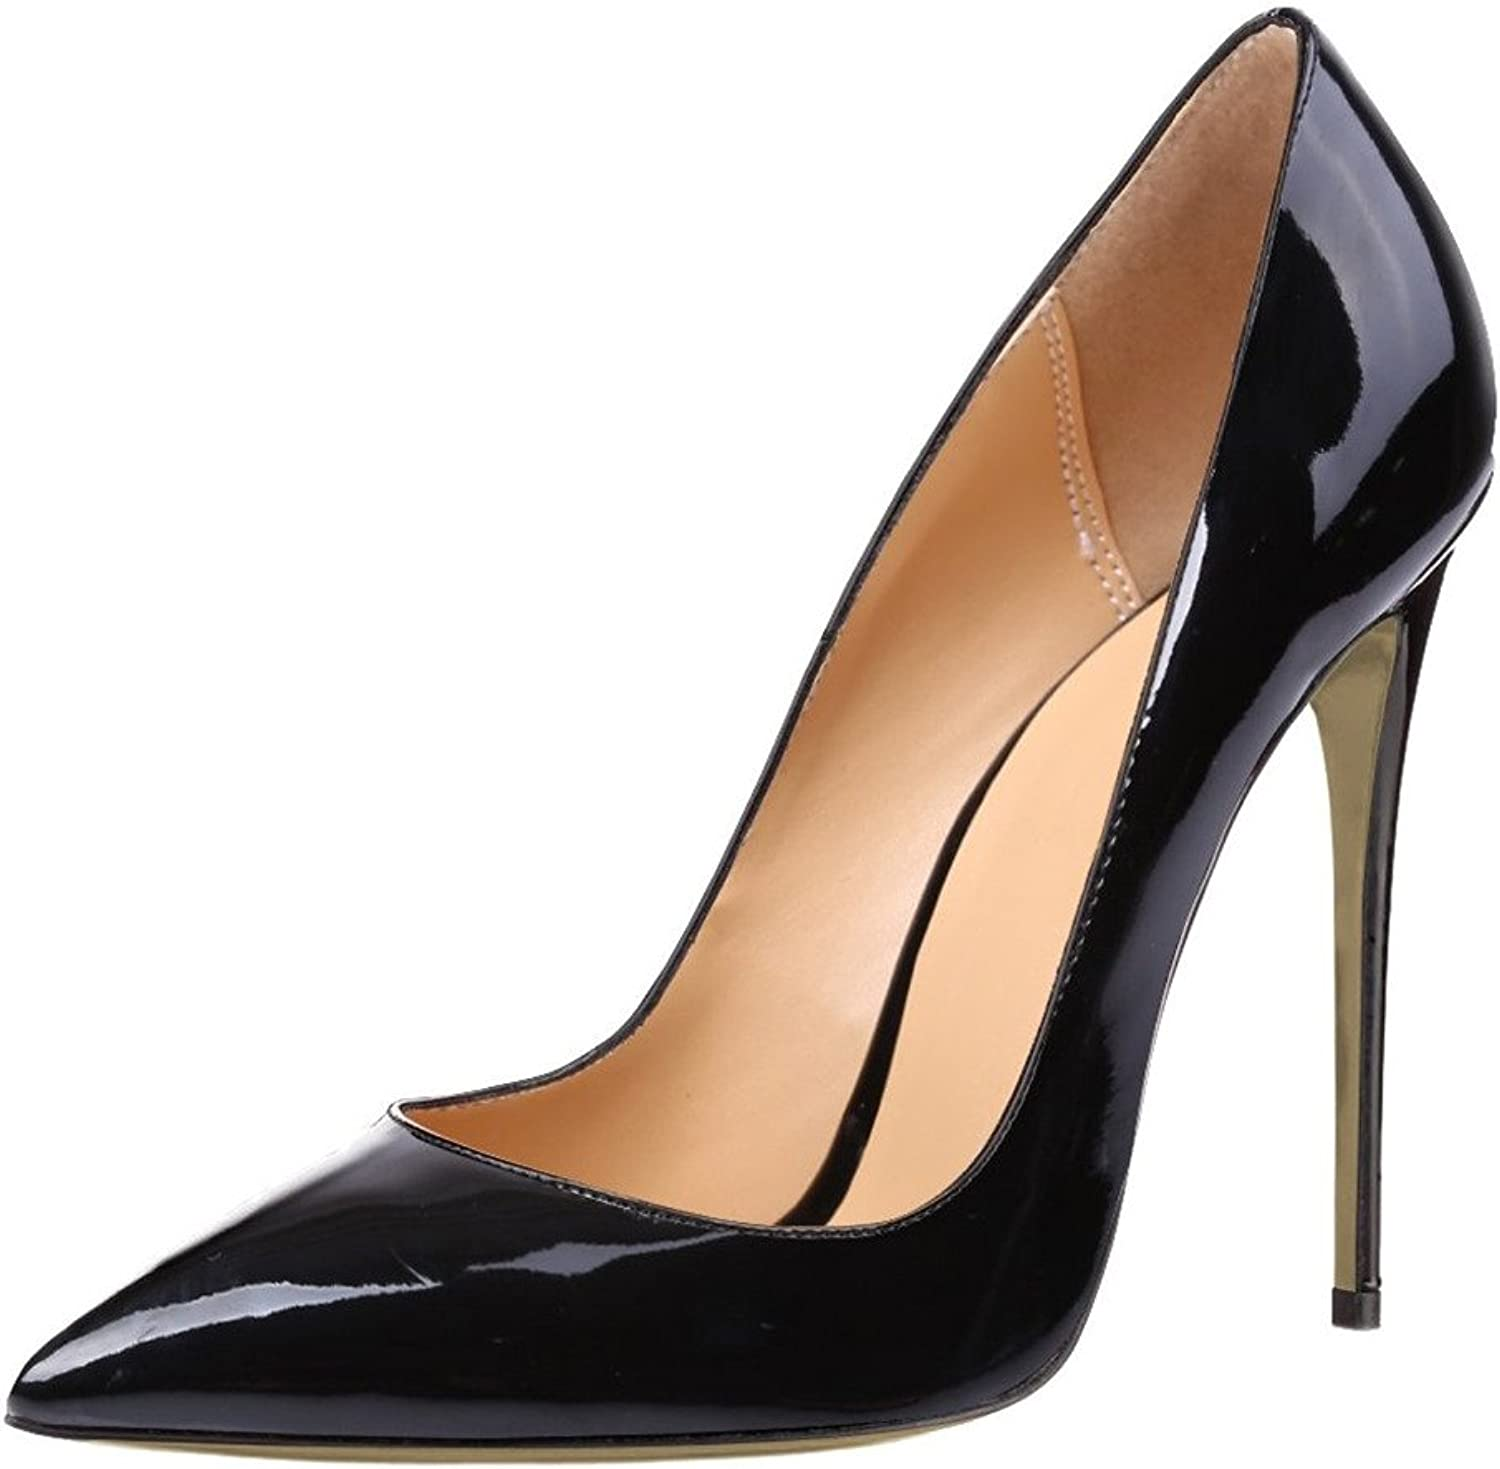 Eldof Women's High heel 12CM Office Pumps Pointed Toe Slip on Heels Classic Pumps